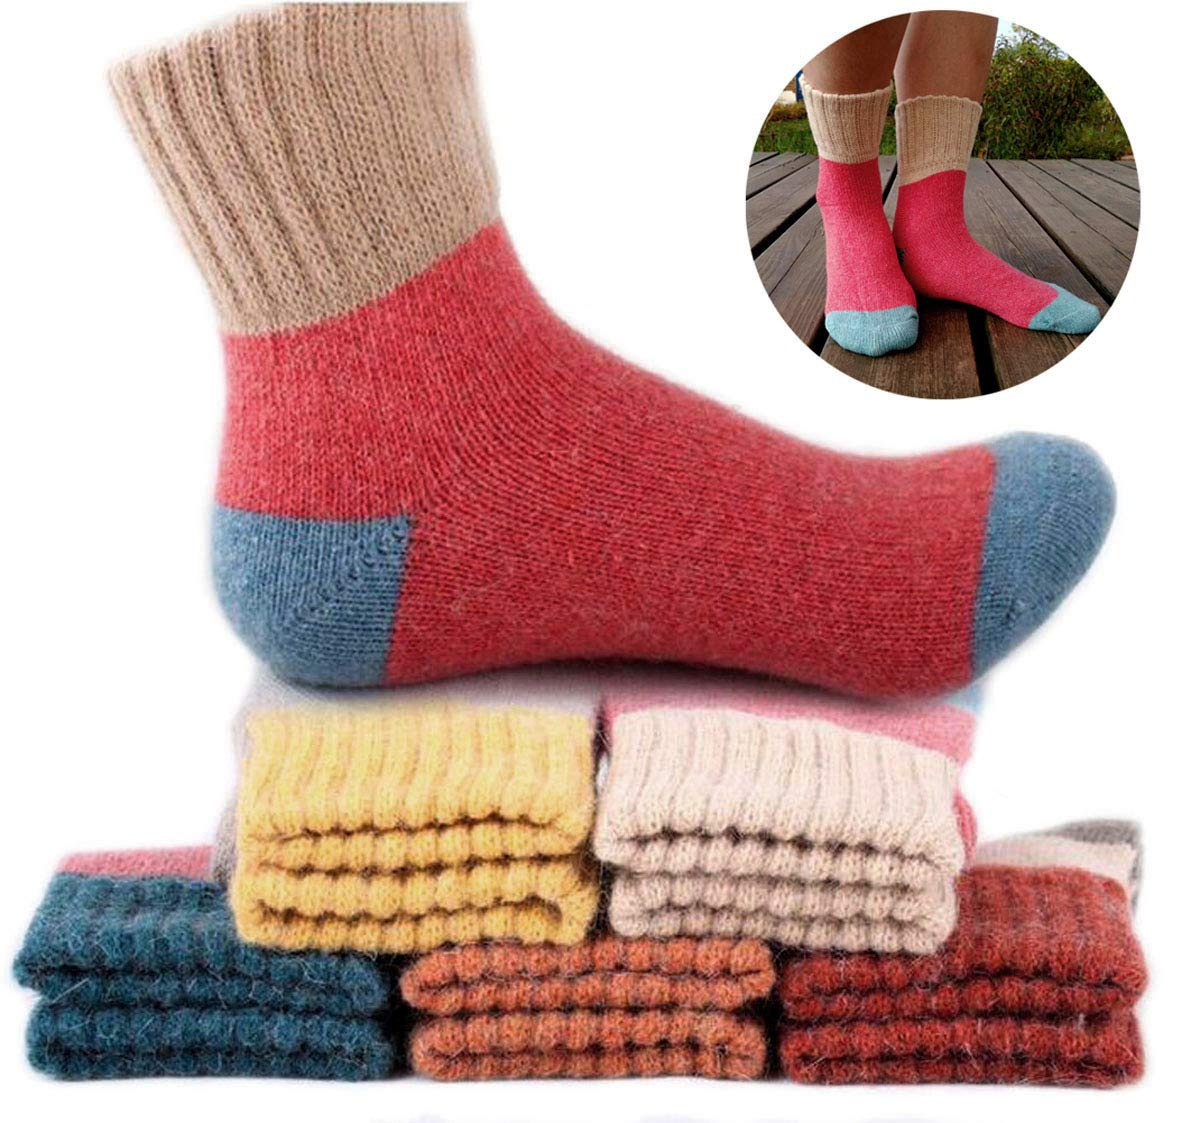 Yshare Women's Super Thick Crew Soft Wool Winter Comfortable Warm Socks (Pack of 5), One Size (5-9), Multicolor